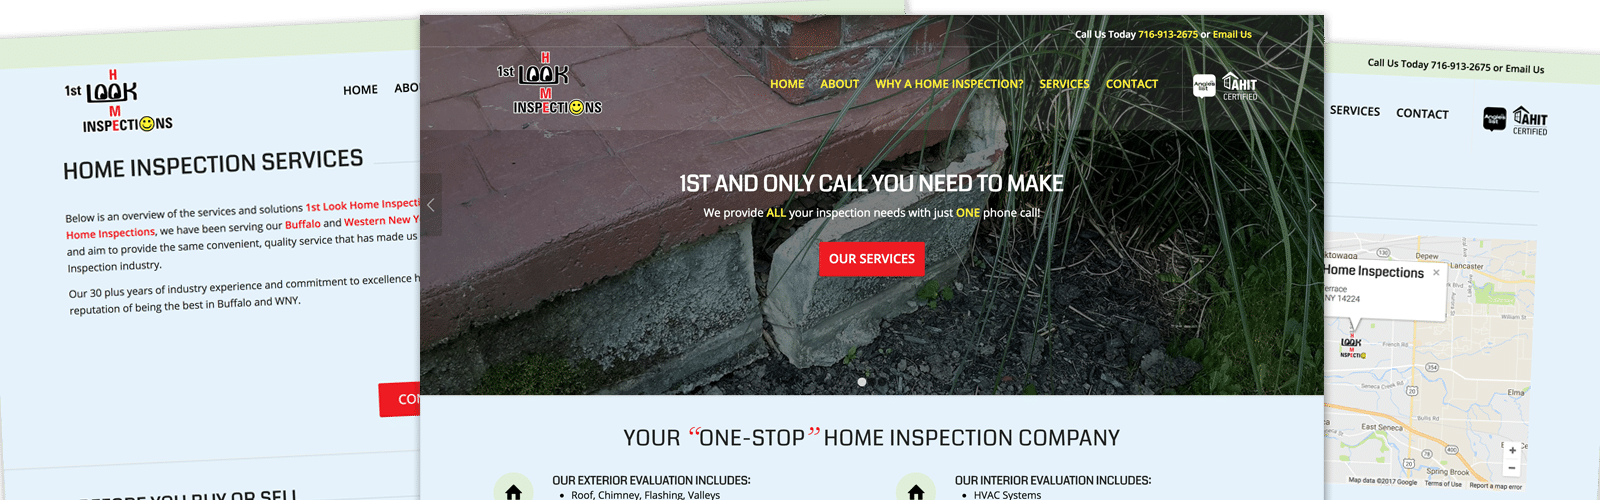 1st Look Home Inspections - Portfolio